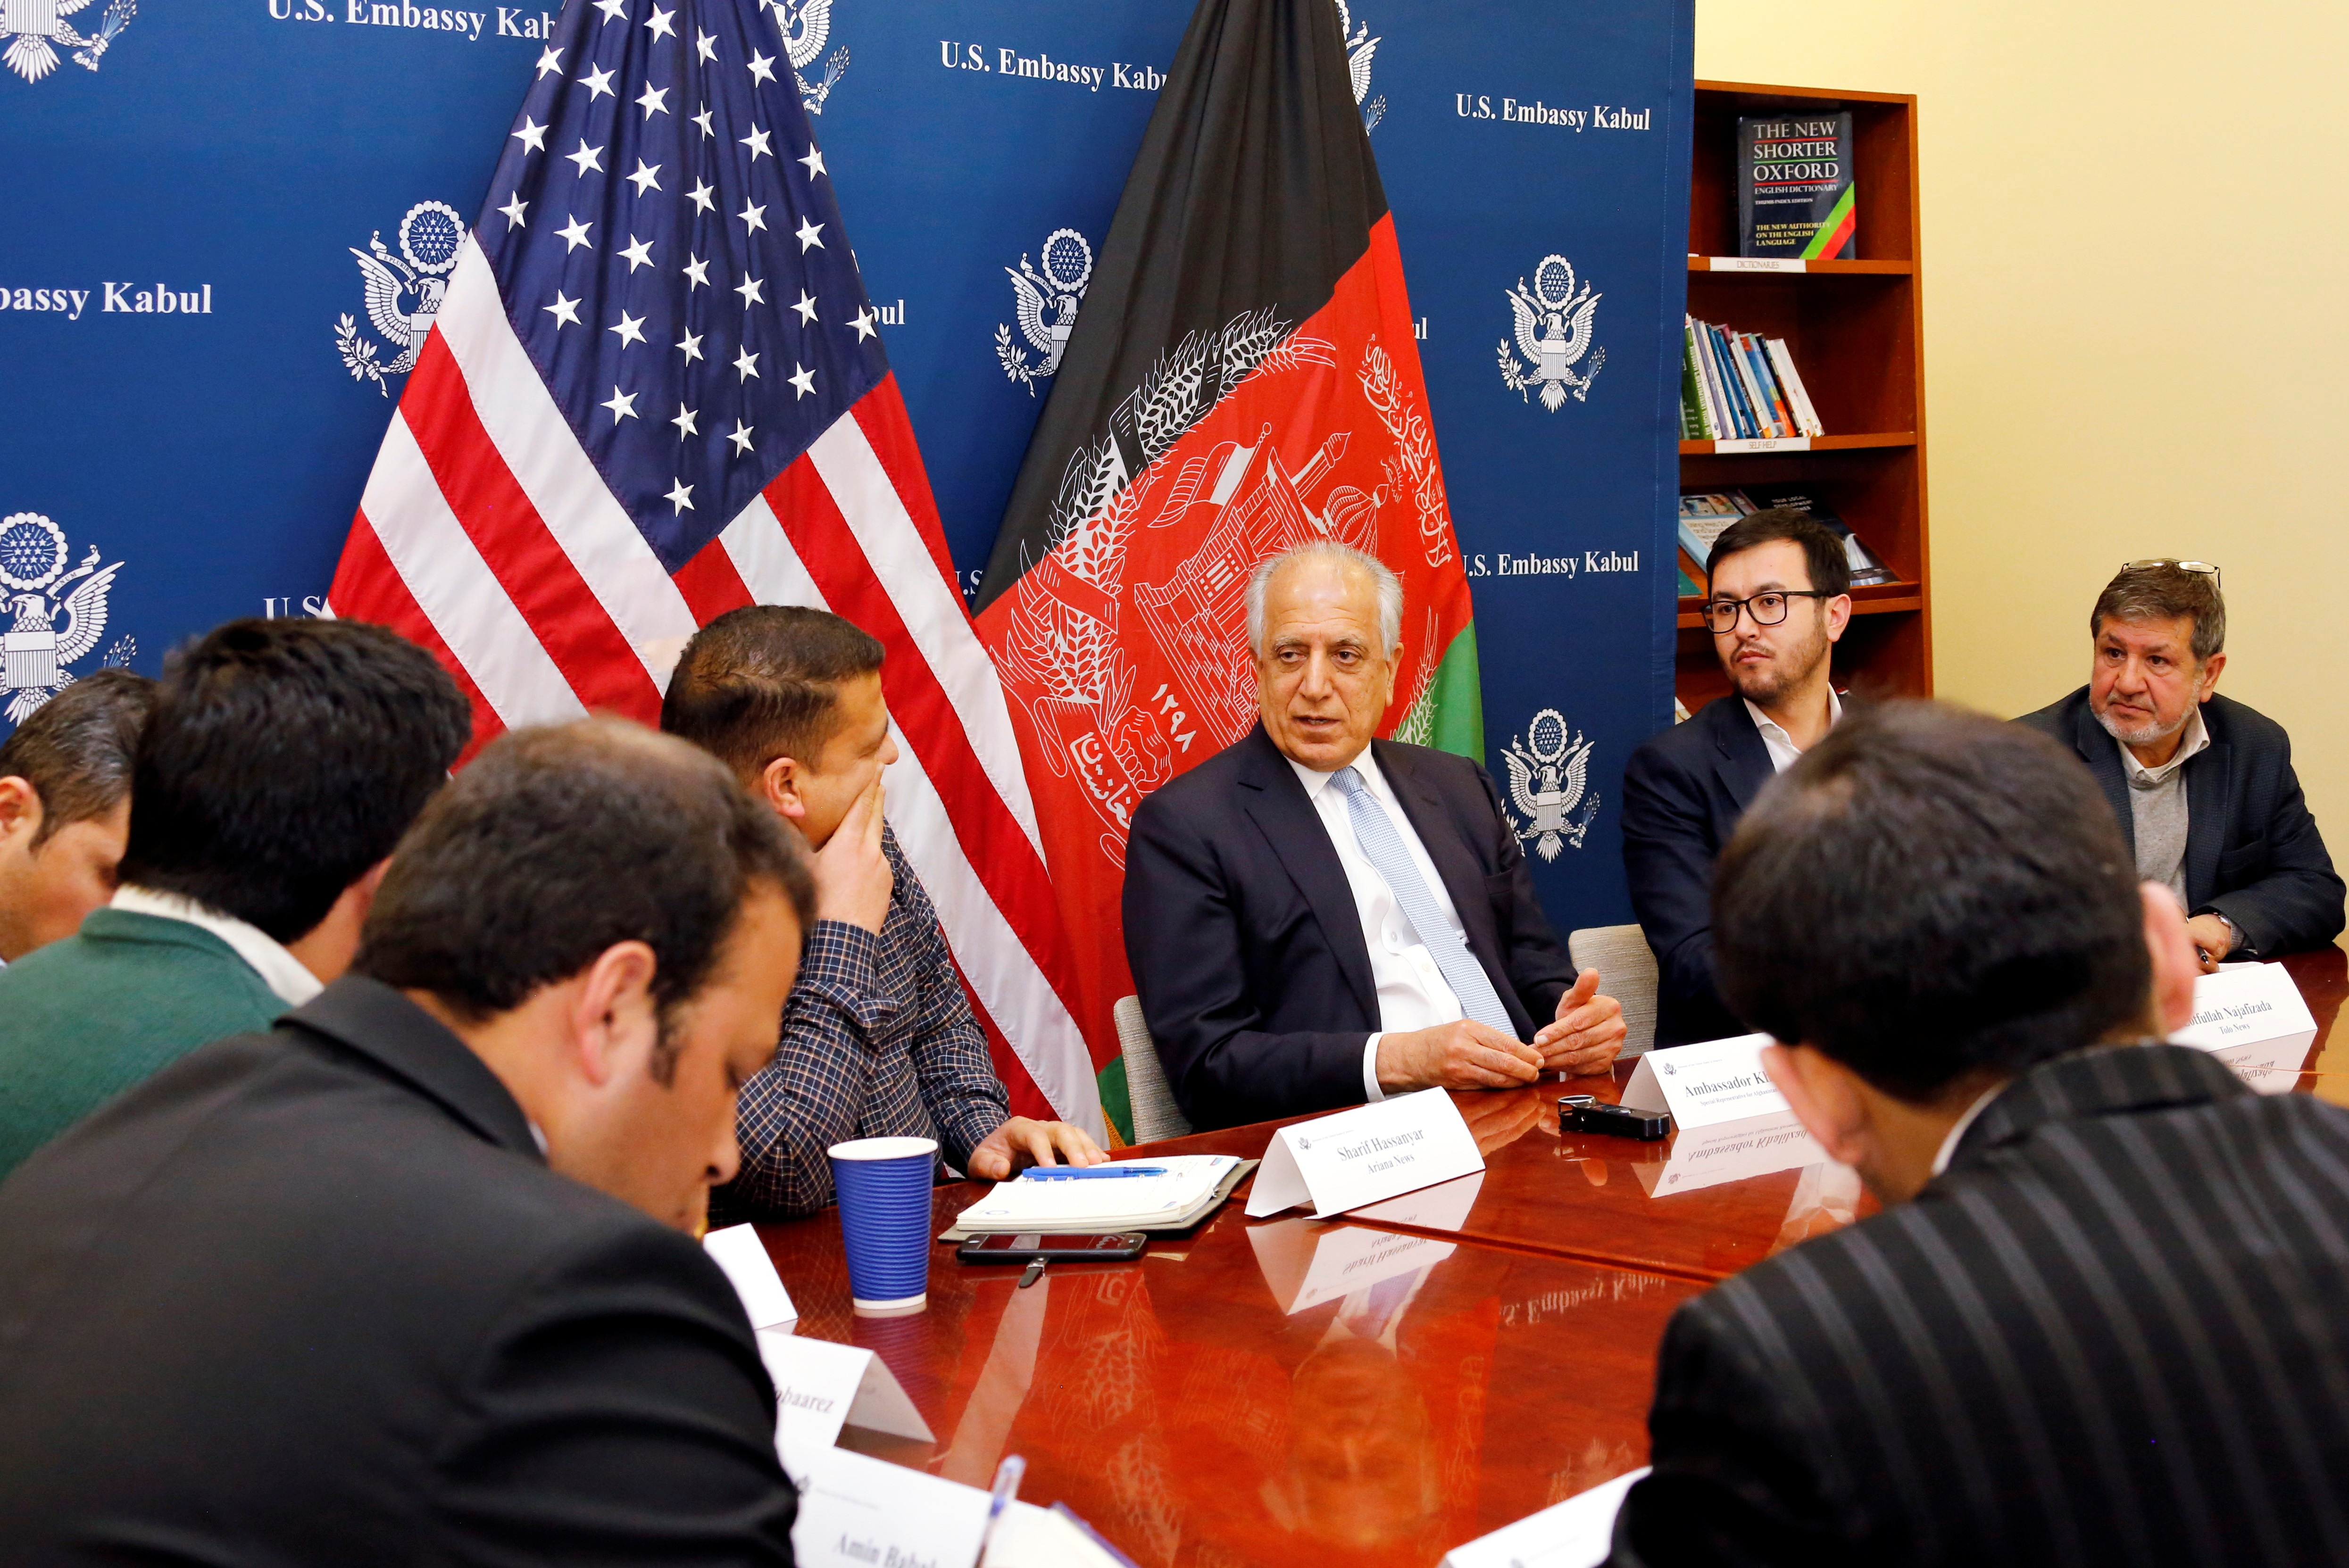 U.S. special envoy for peace in Afghanistan, Zalmay Khalilzad, (C) speaks during a roundtable discussion with Afghan media at the U.S Embassy in Kabul, Jan. 28, 2019. (U.S Embassy/ Handout via Reuters)